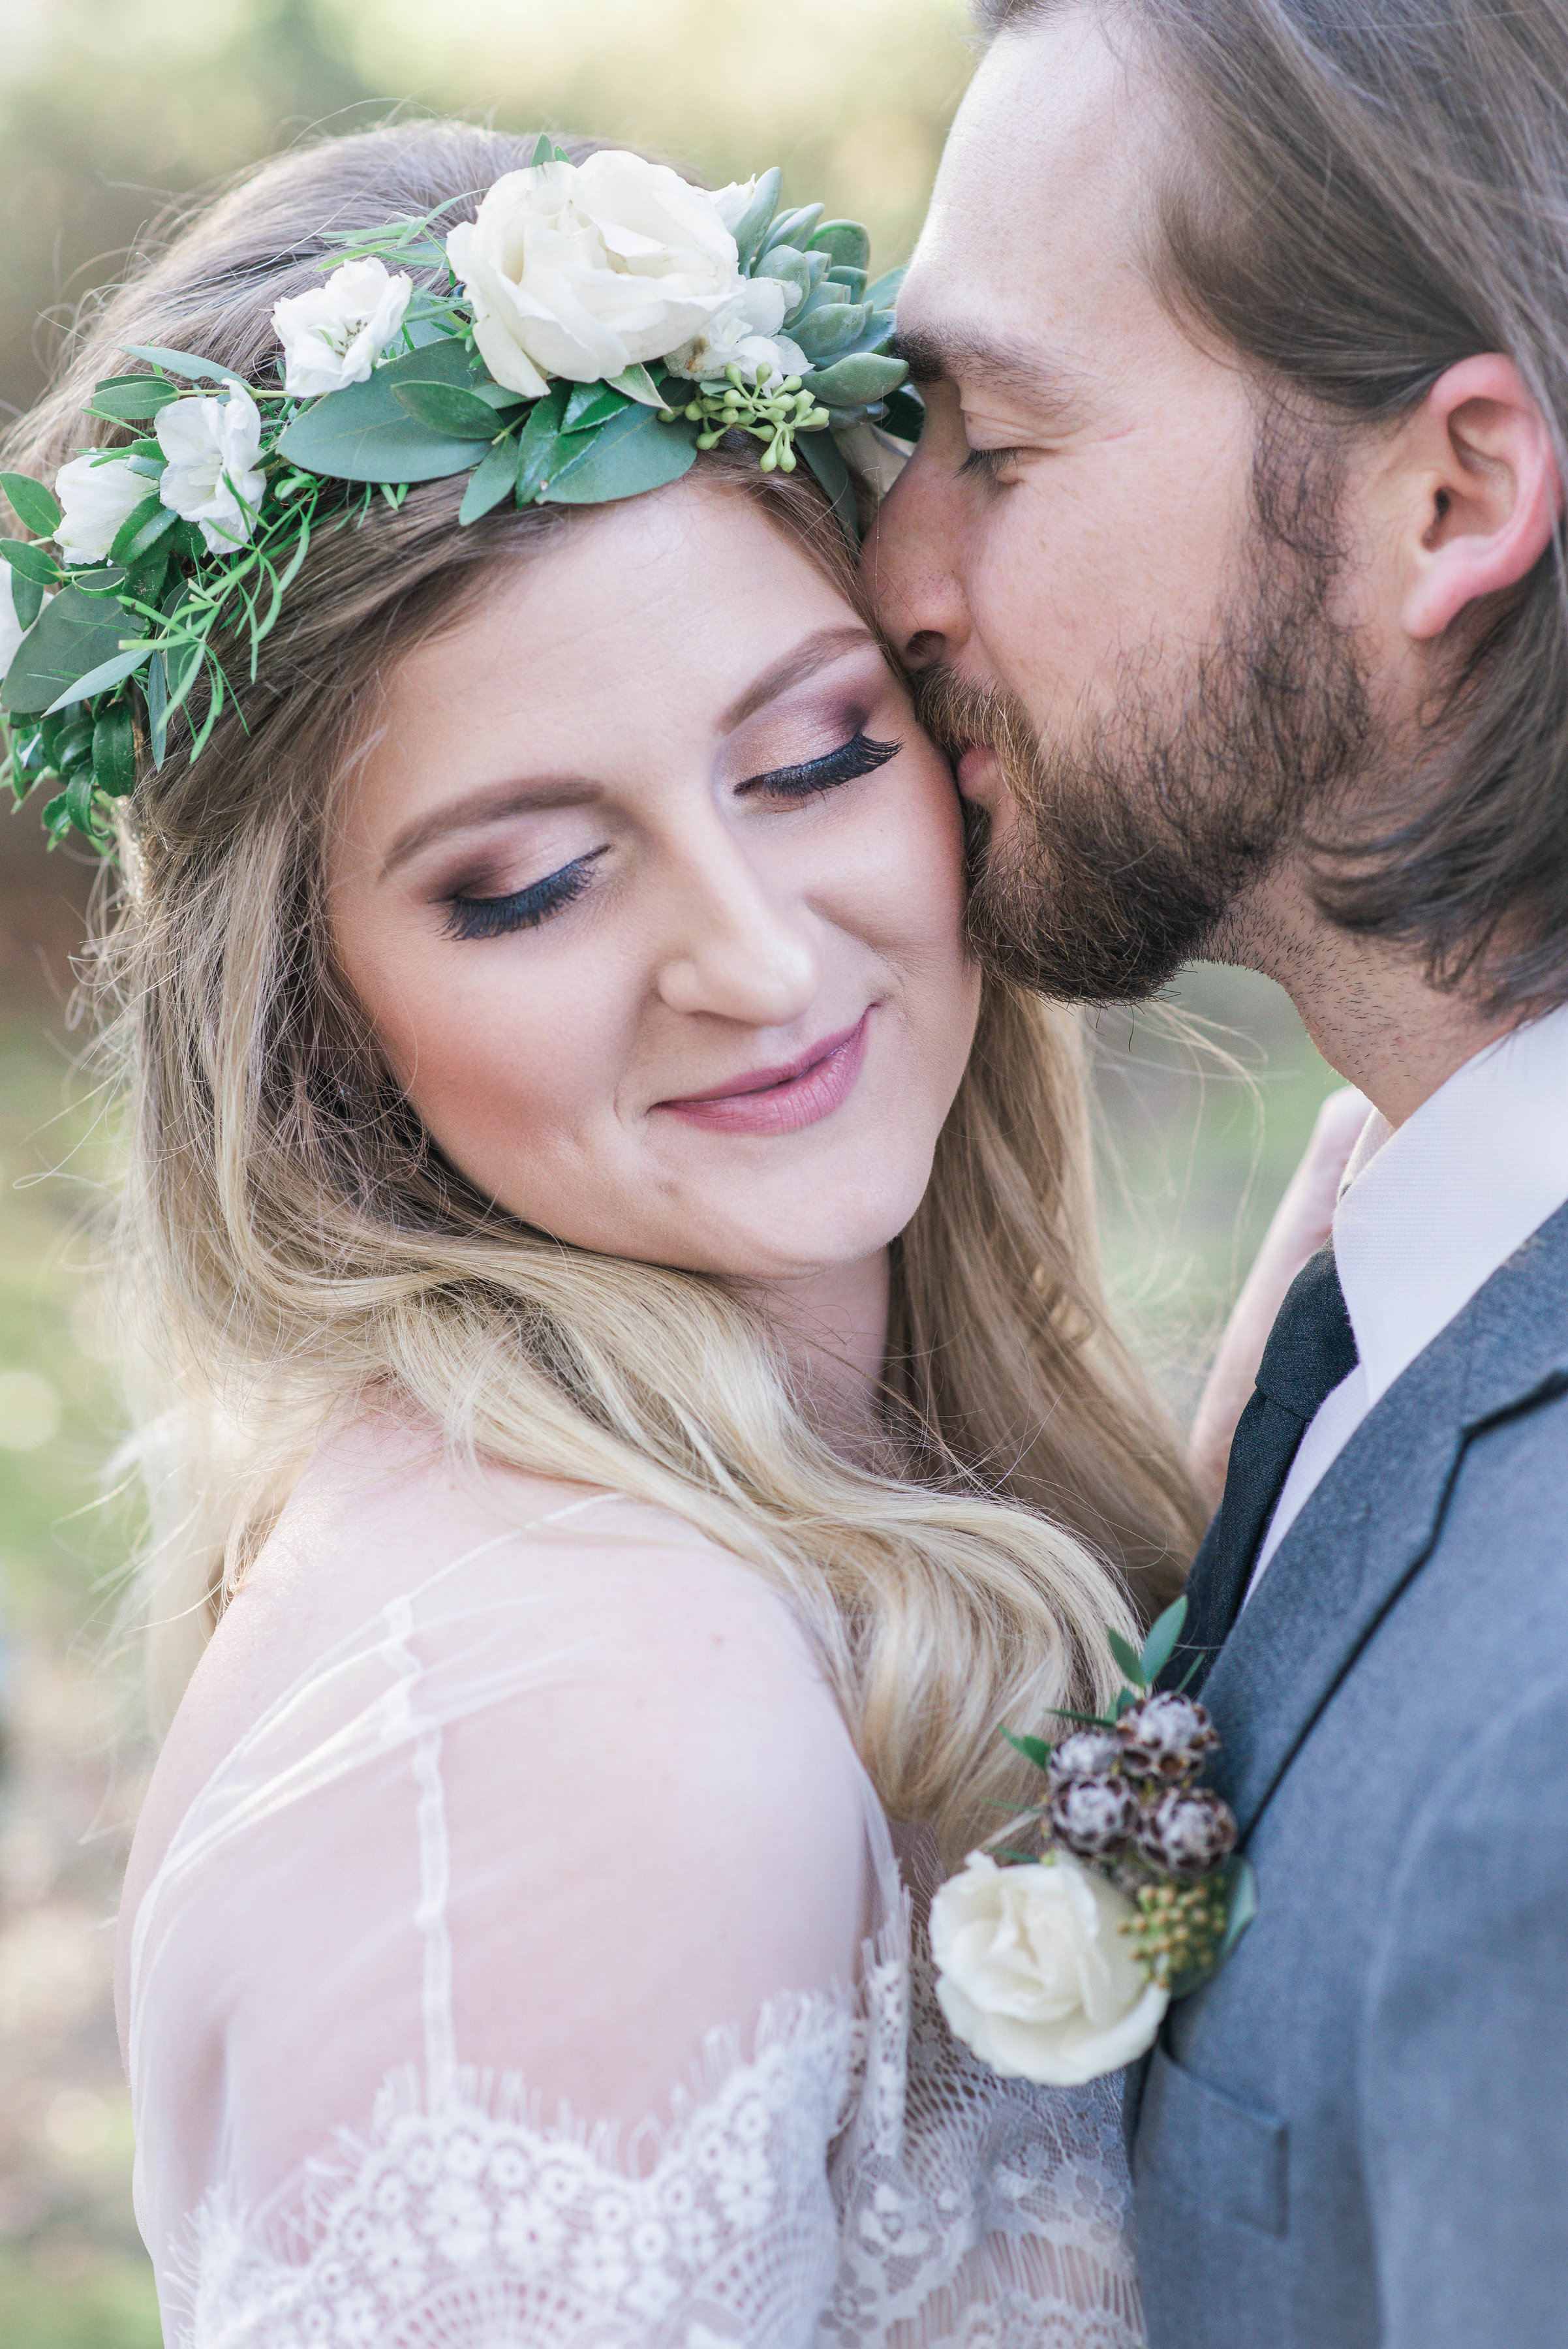 Wedding Couple Kissing | Ademurelife Fashion Blog